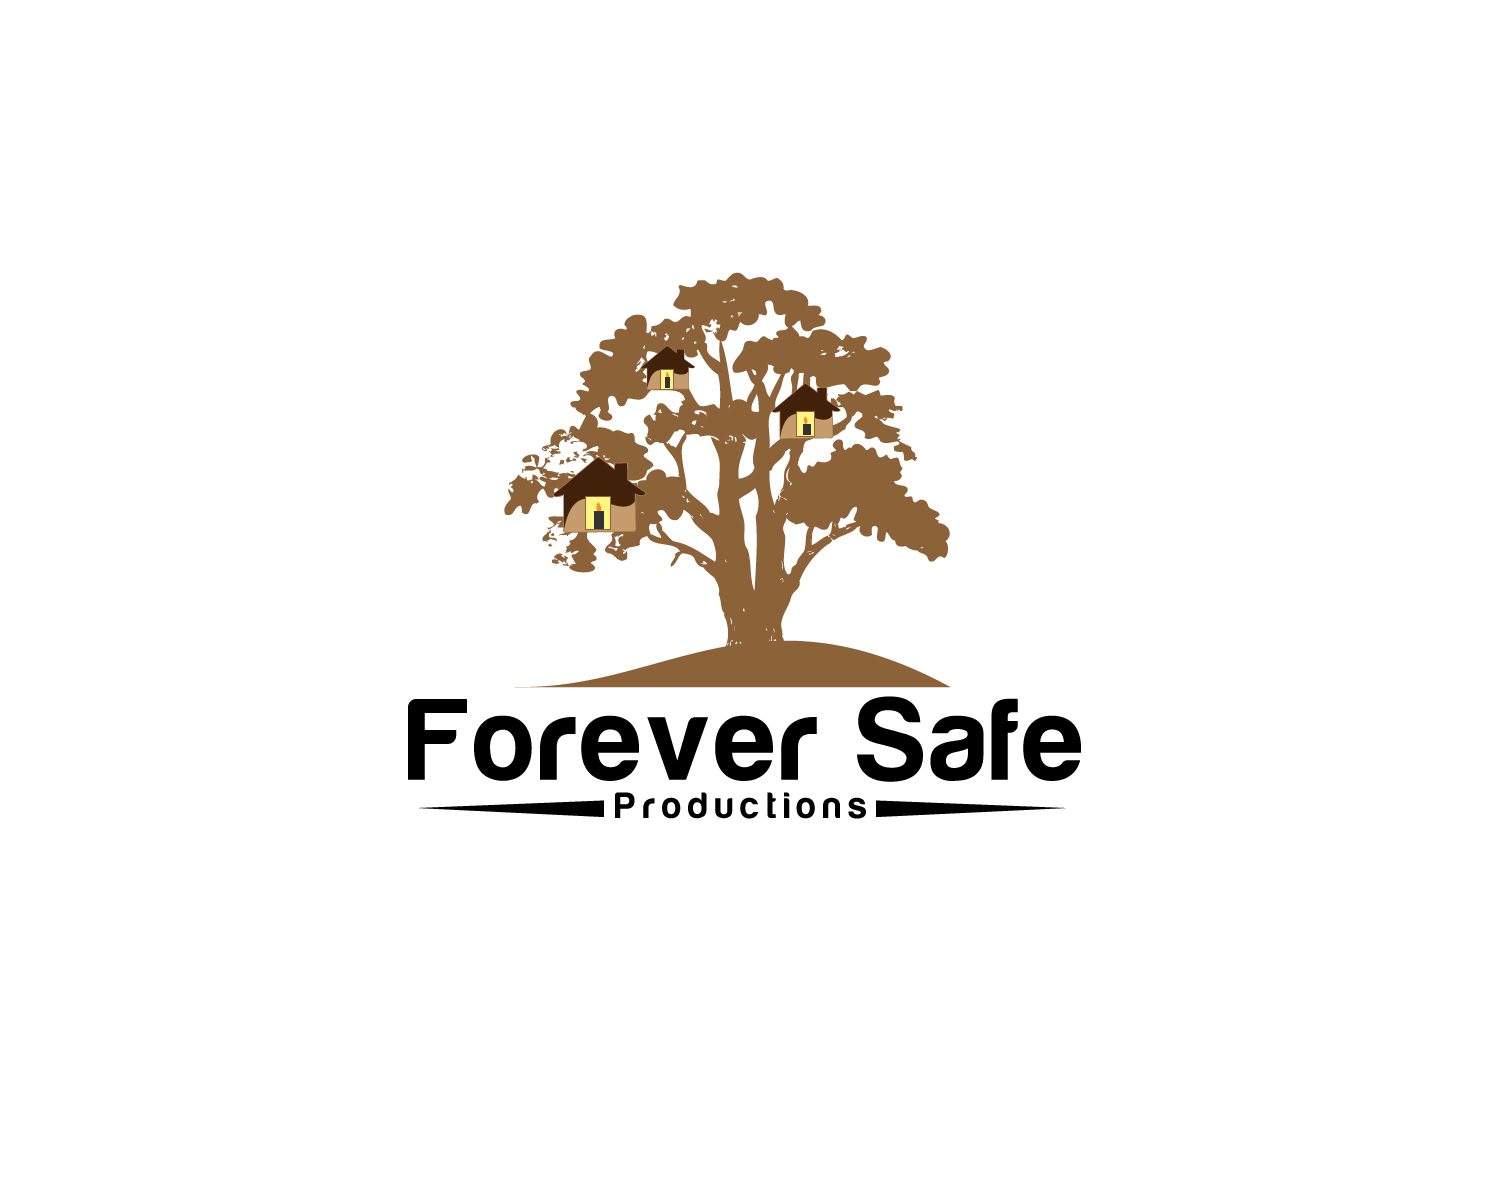 Logo Design by Jagdeep Singh - Entry No. 22 in the Logo Design Contest Inspiring Logo Design for Forever Safe Productions.